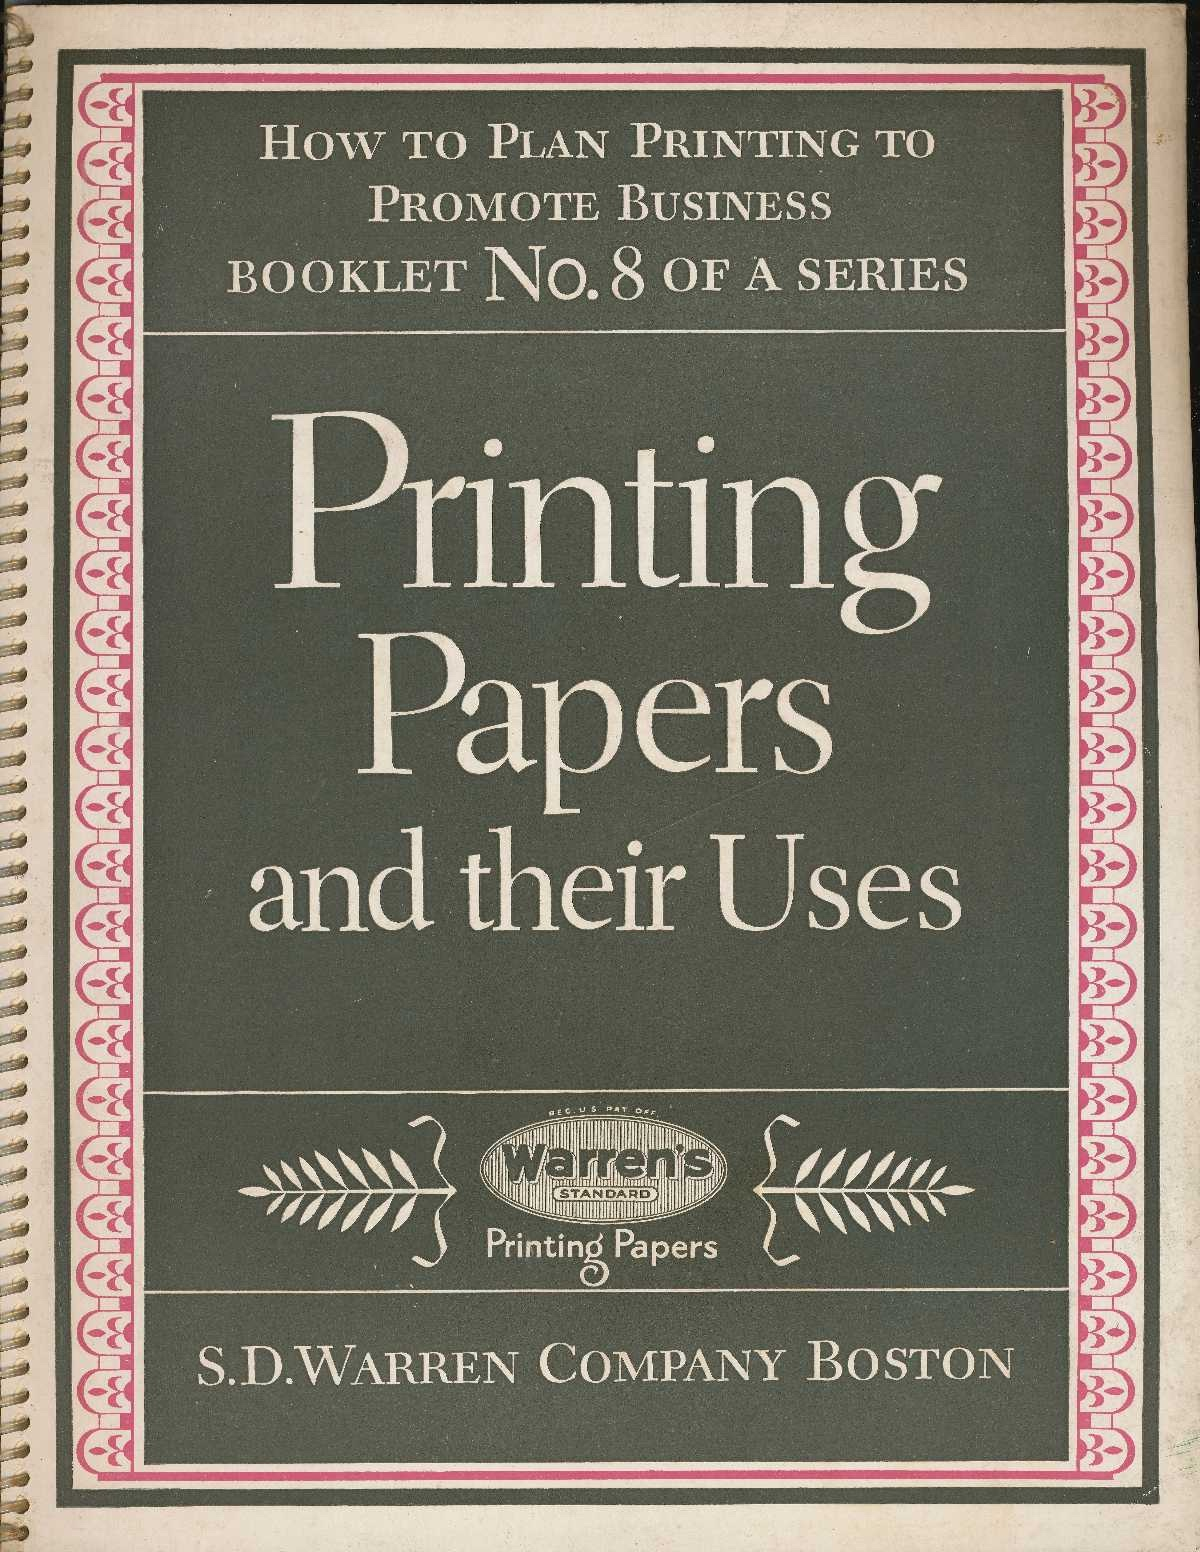 Image for Printing Papers and Their Uses: How to Plan Printing to Promote Business